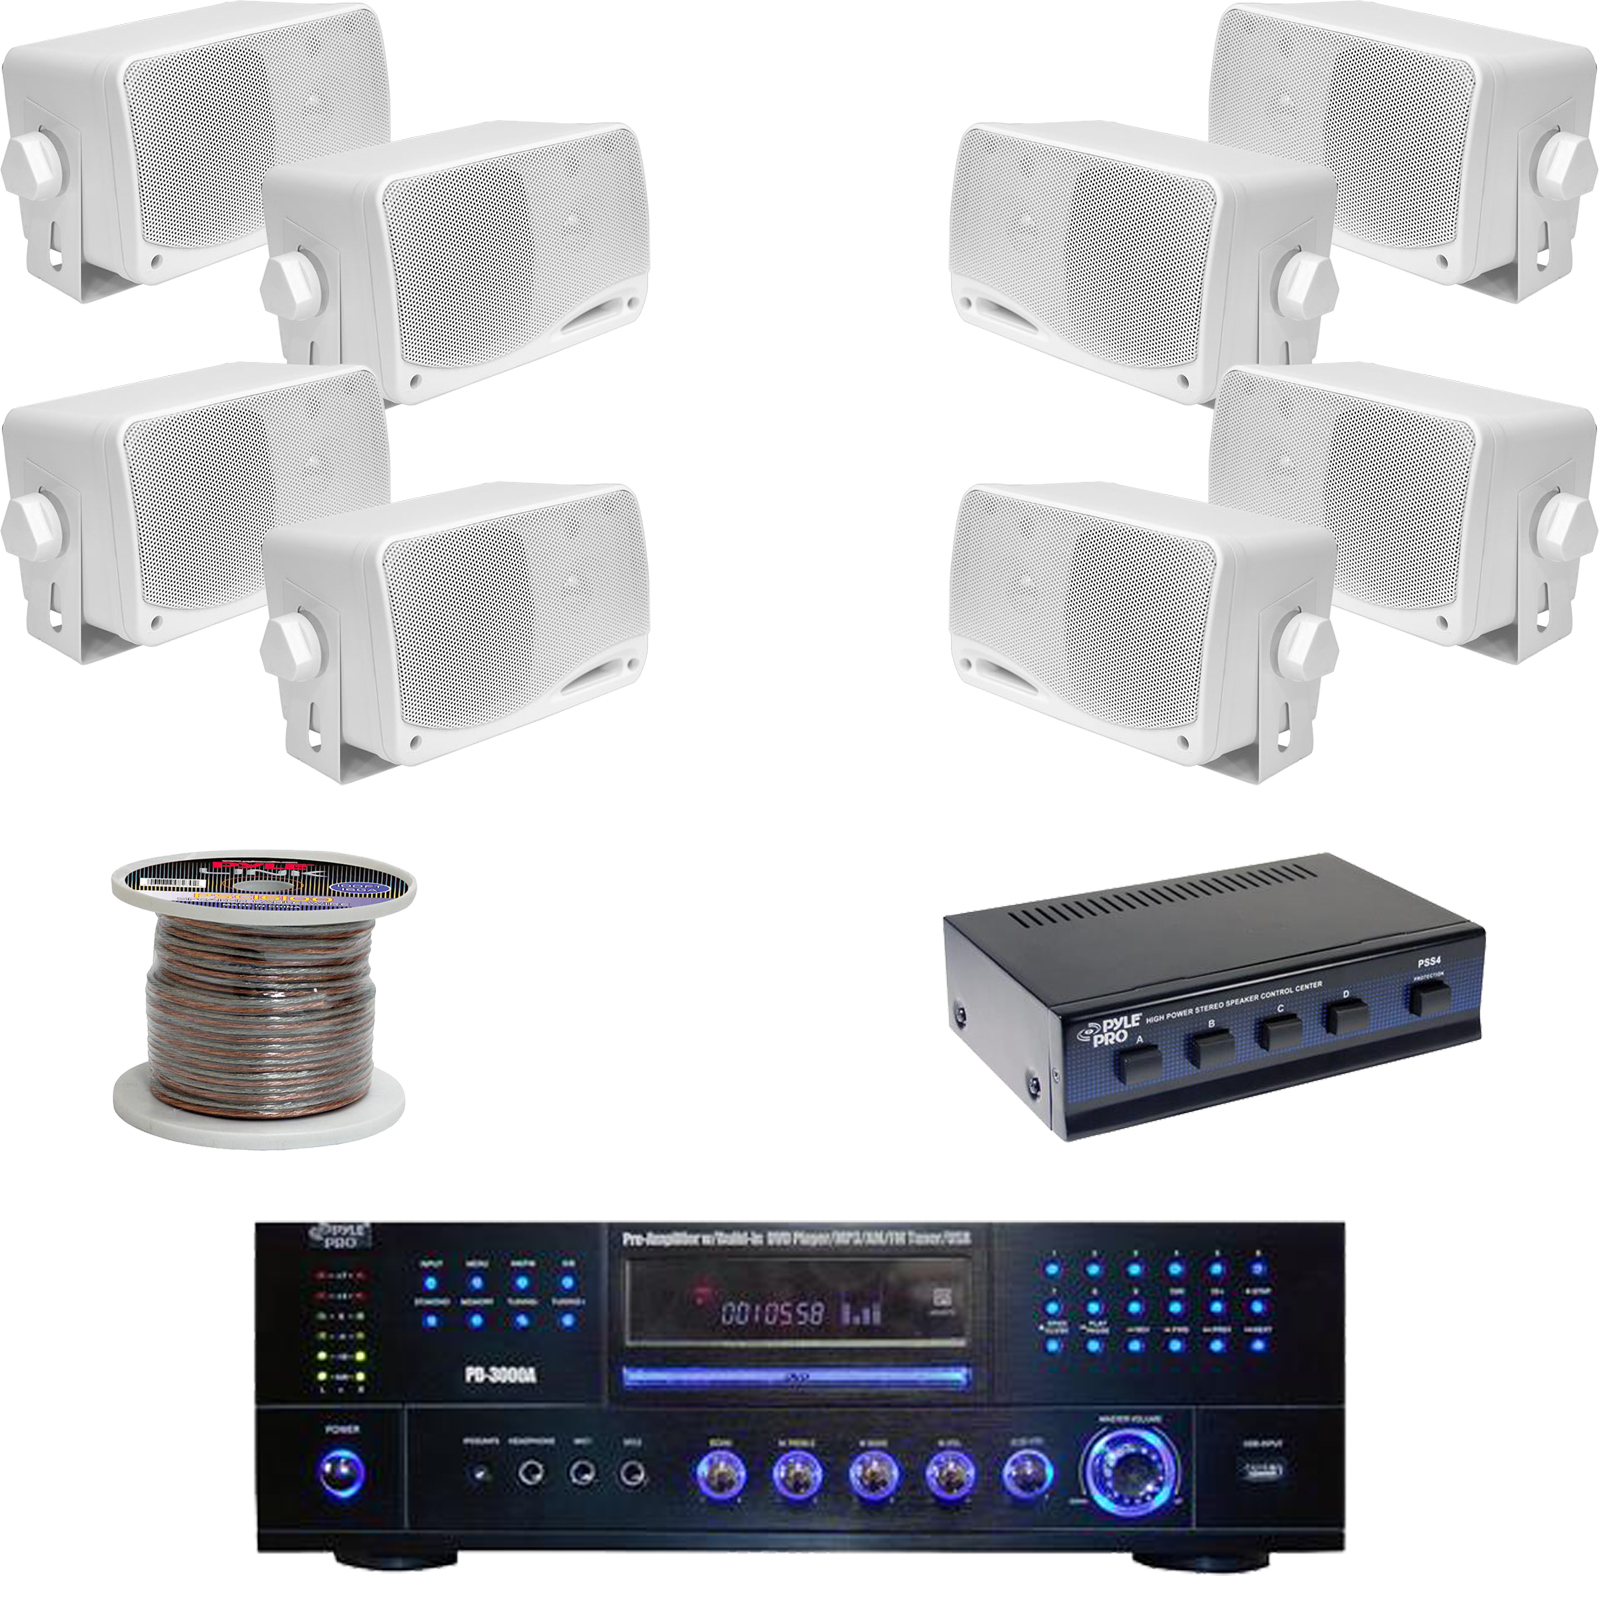 hight resolution of details about pd3000w dvd usb receiver 3 5 box speakers speaker selector speaker wiring